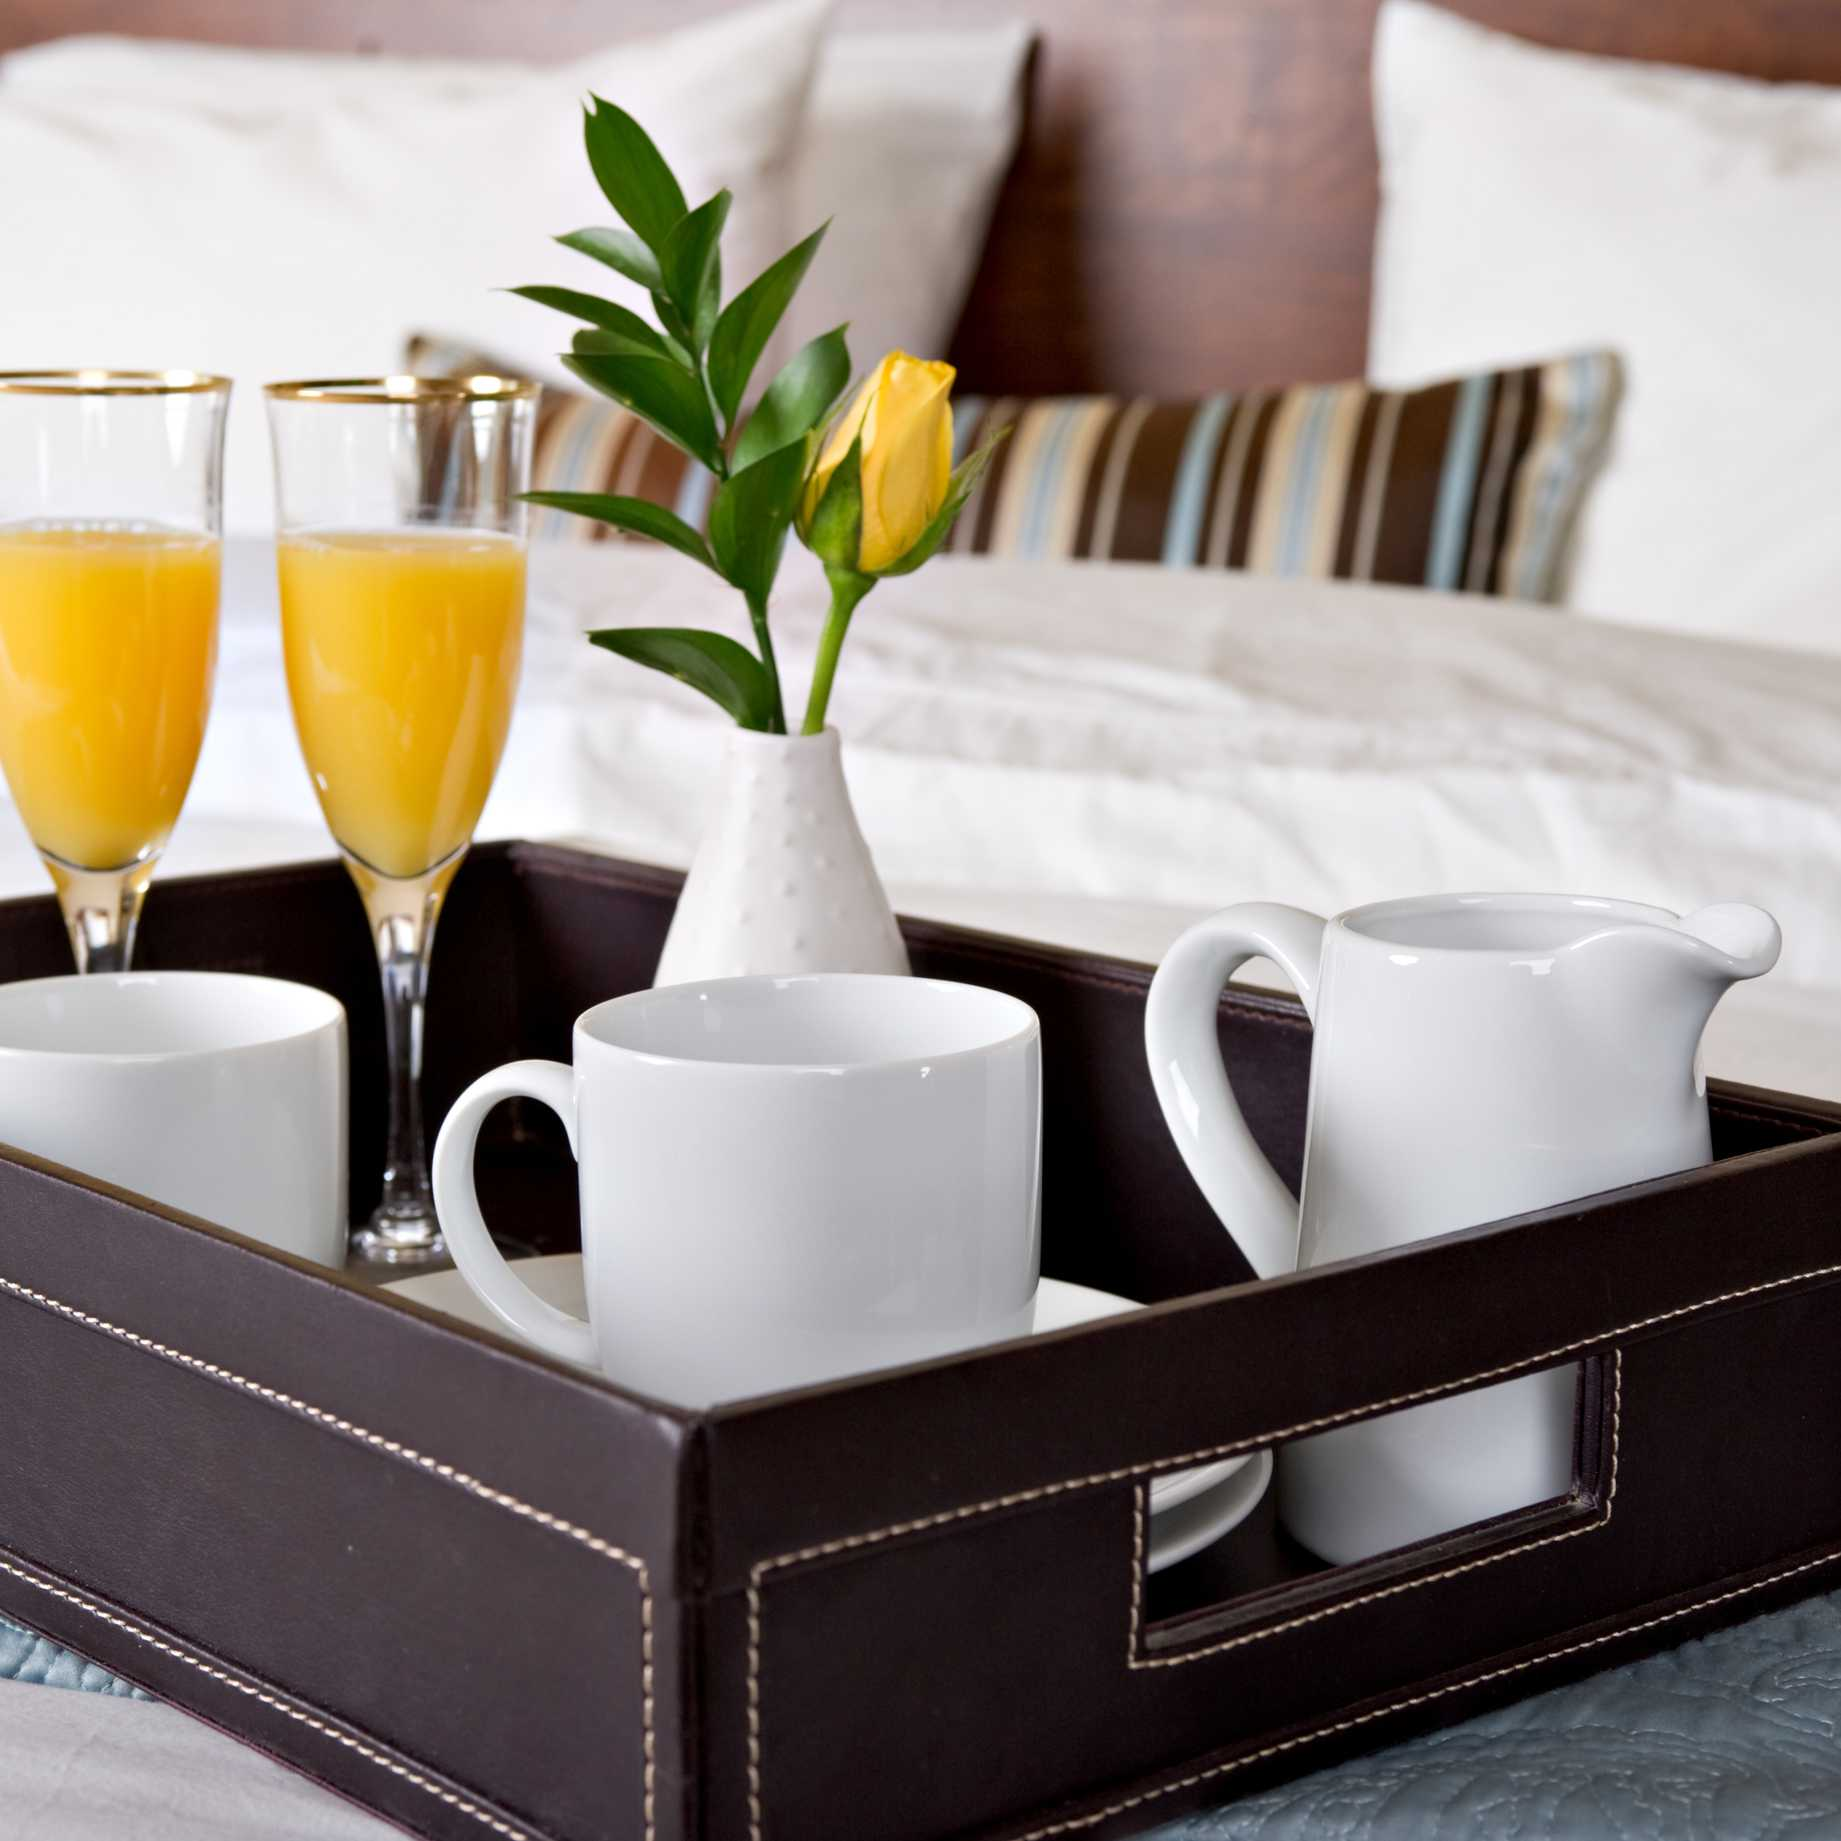 HOTEL GUEST ROOM ACCESSORIES  Bielen and Associates